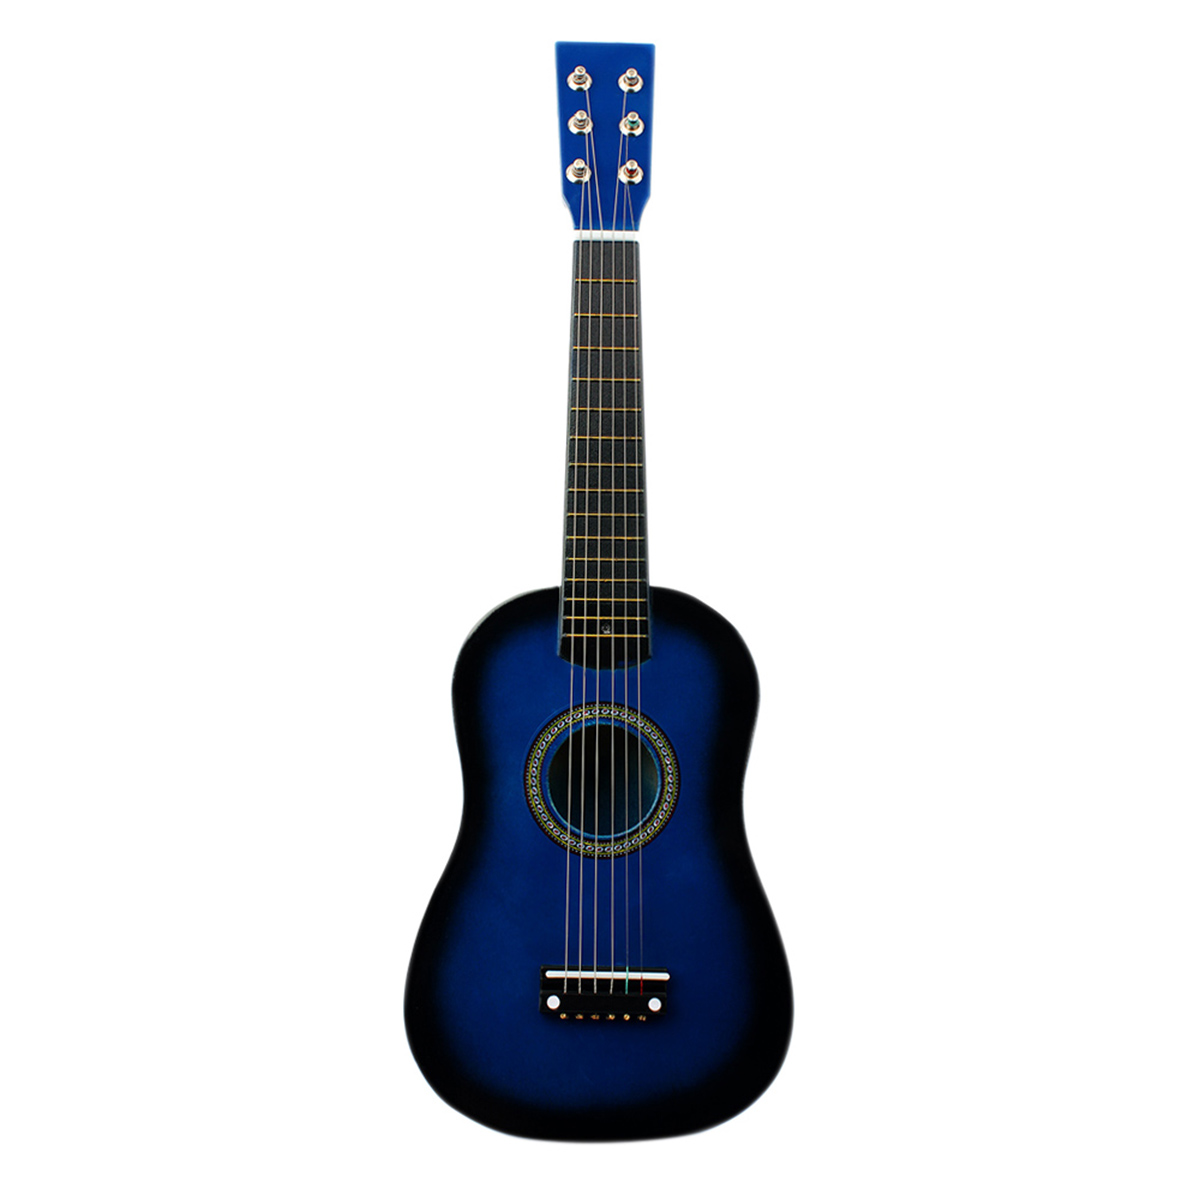 IRIN Mini <font><b>23</b></font> Inch Basswood <font><b>12</b></font> Frets 6 String Acoustic Guitar with Pick and Strings for Kids / Beginners image